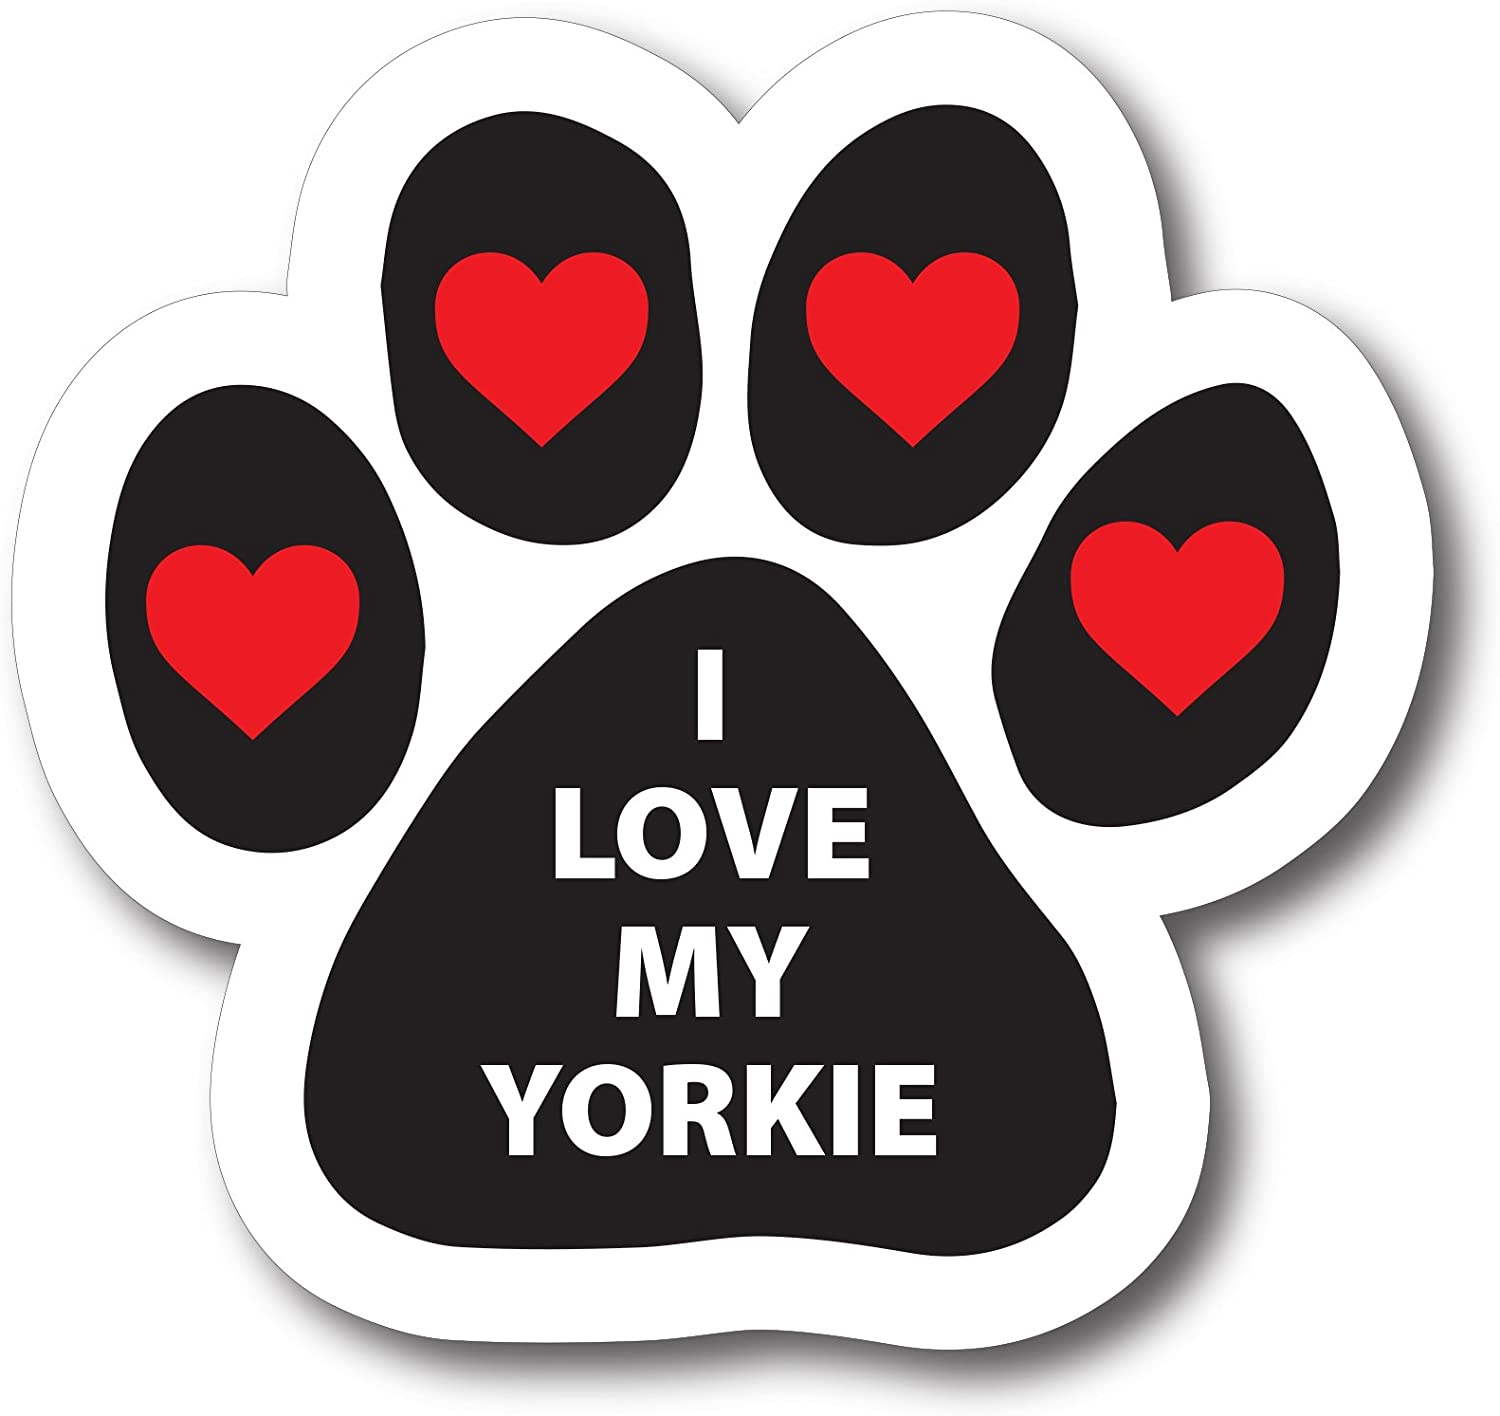 Magnet Me Up I Love My Yorkie Pawprint Car Magnet Paw Print Auto Truck Decal Magnet